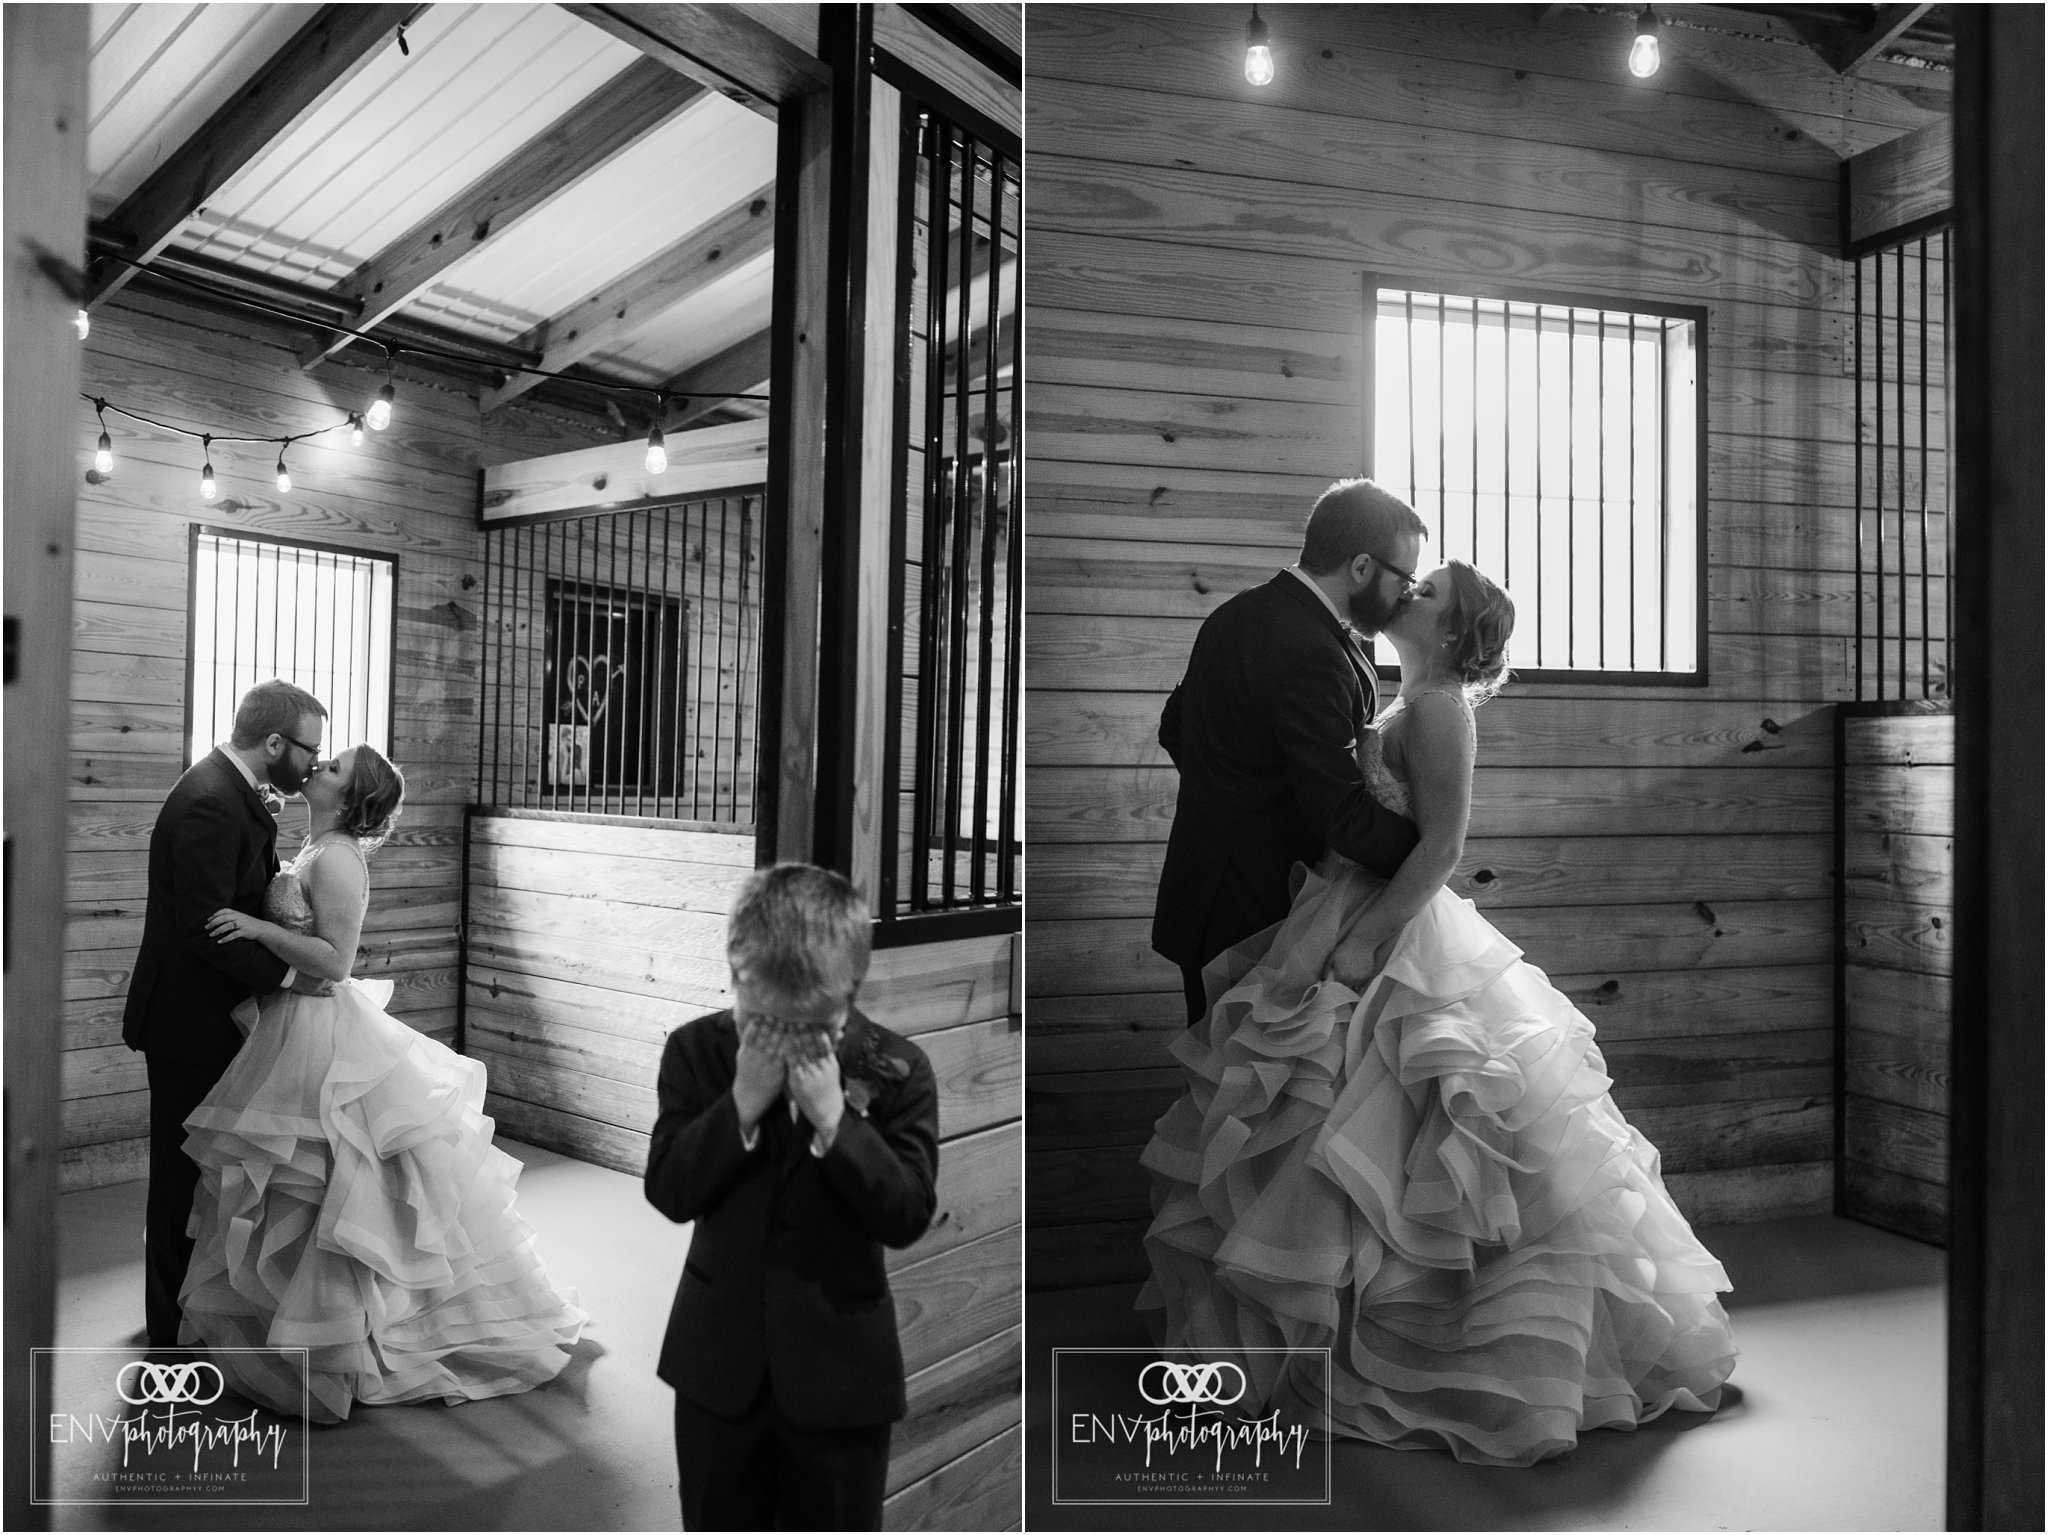 mount vernon columbus ohio irongate equestrian center wedding photographer (5).jpg